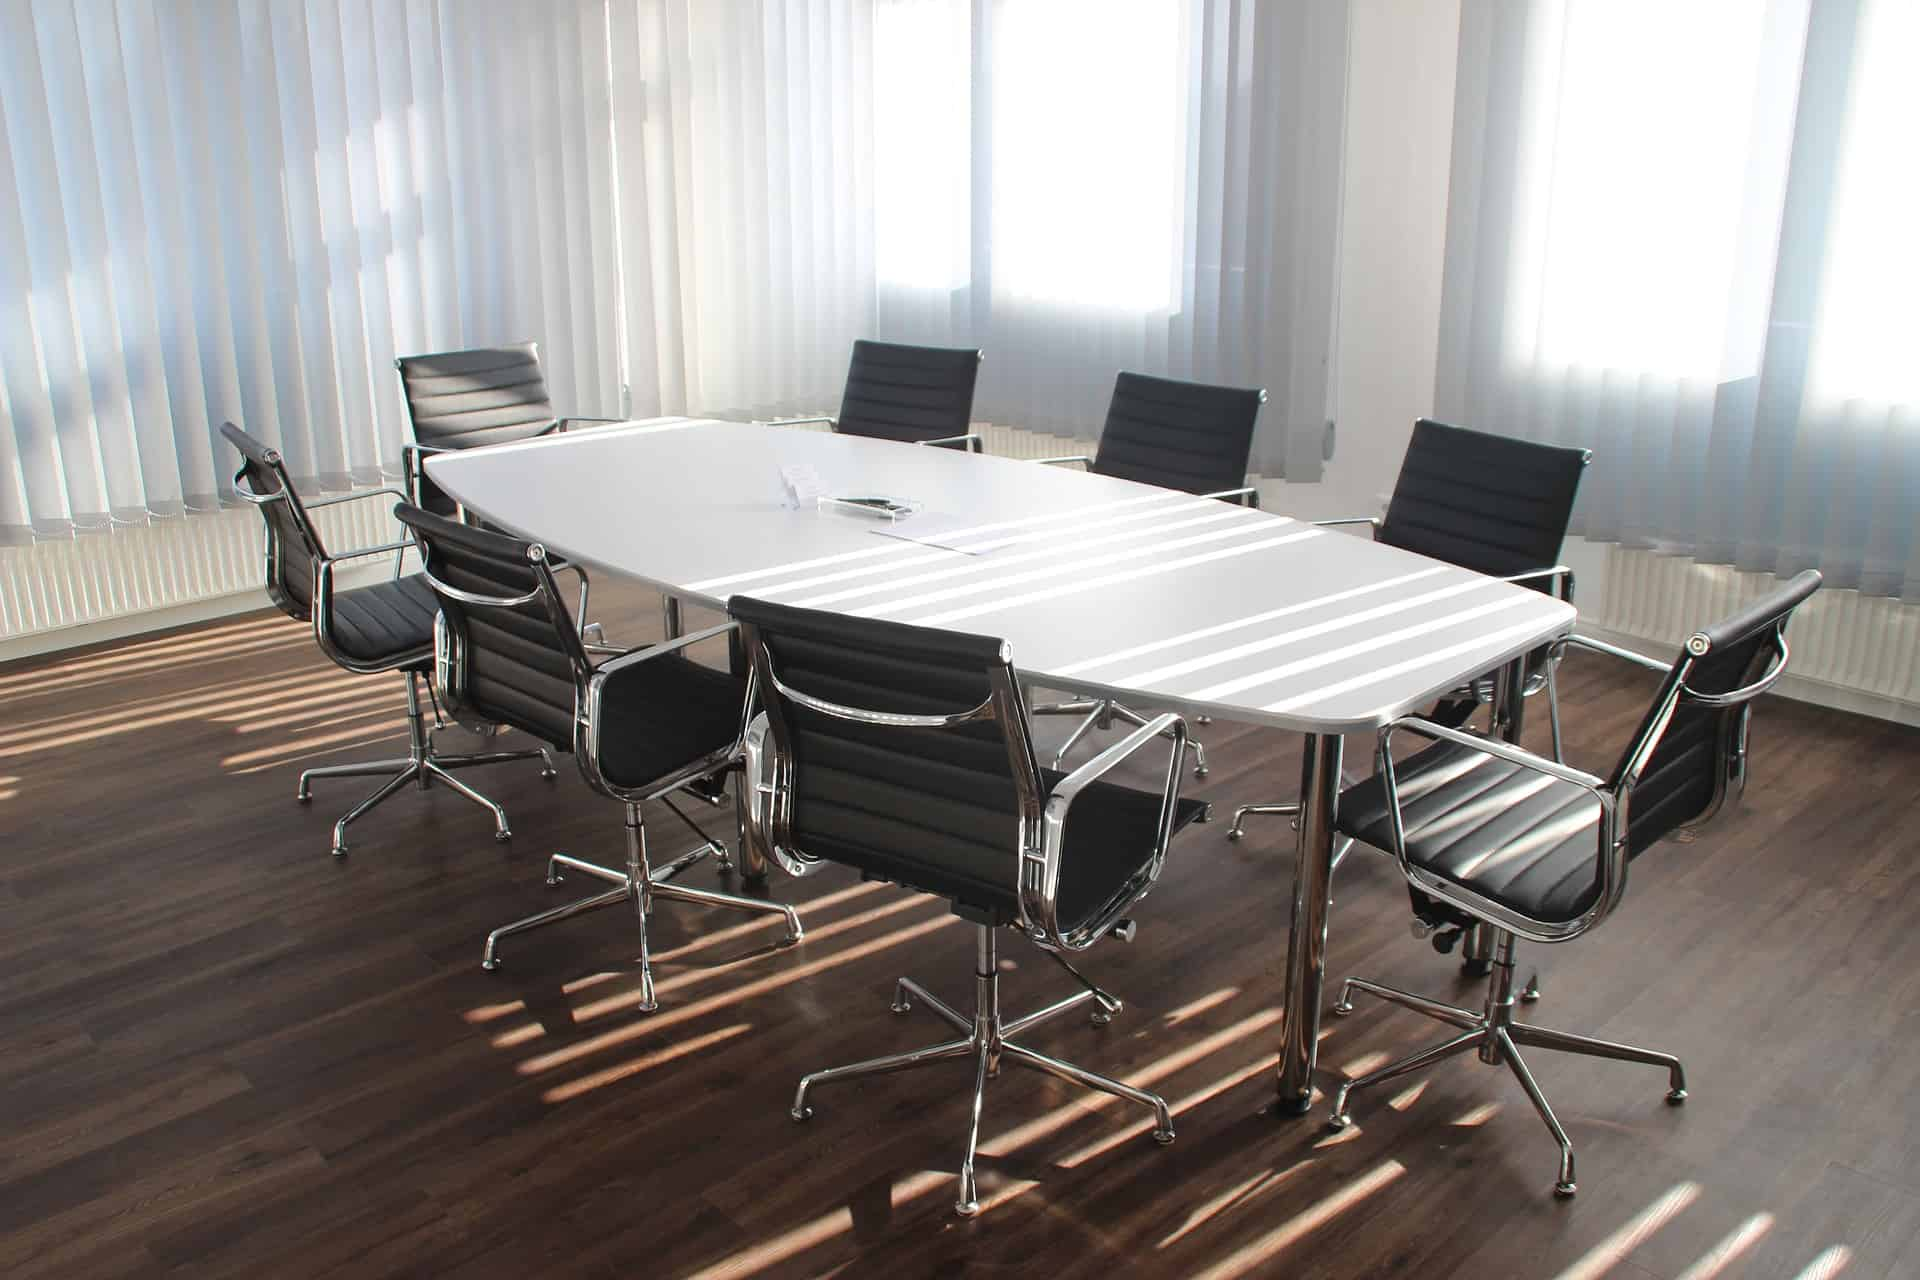 Conference table and chairs in a well-lit room